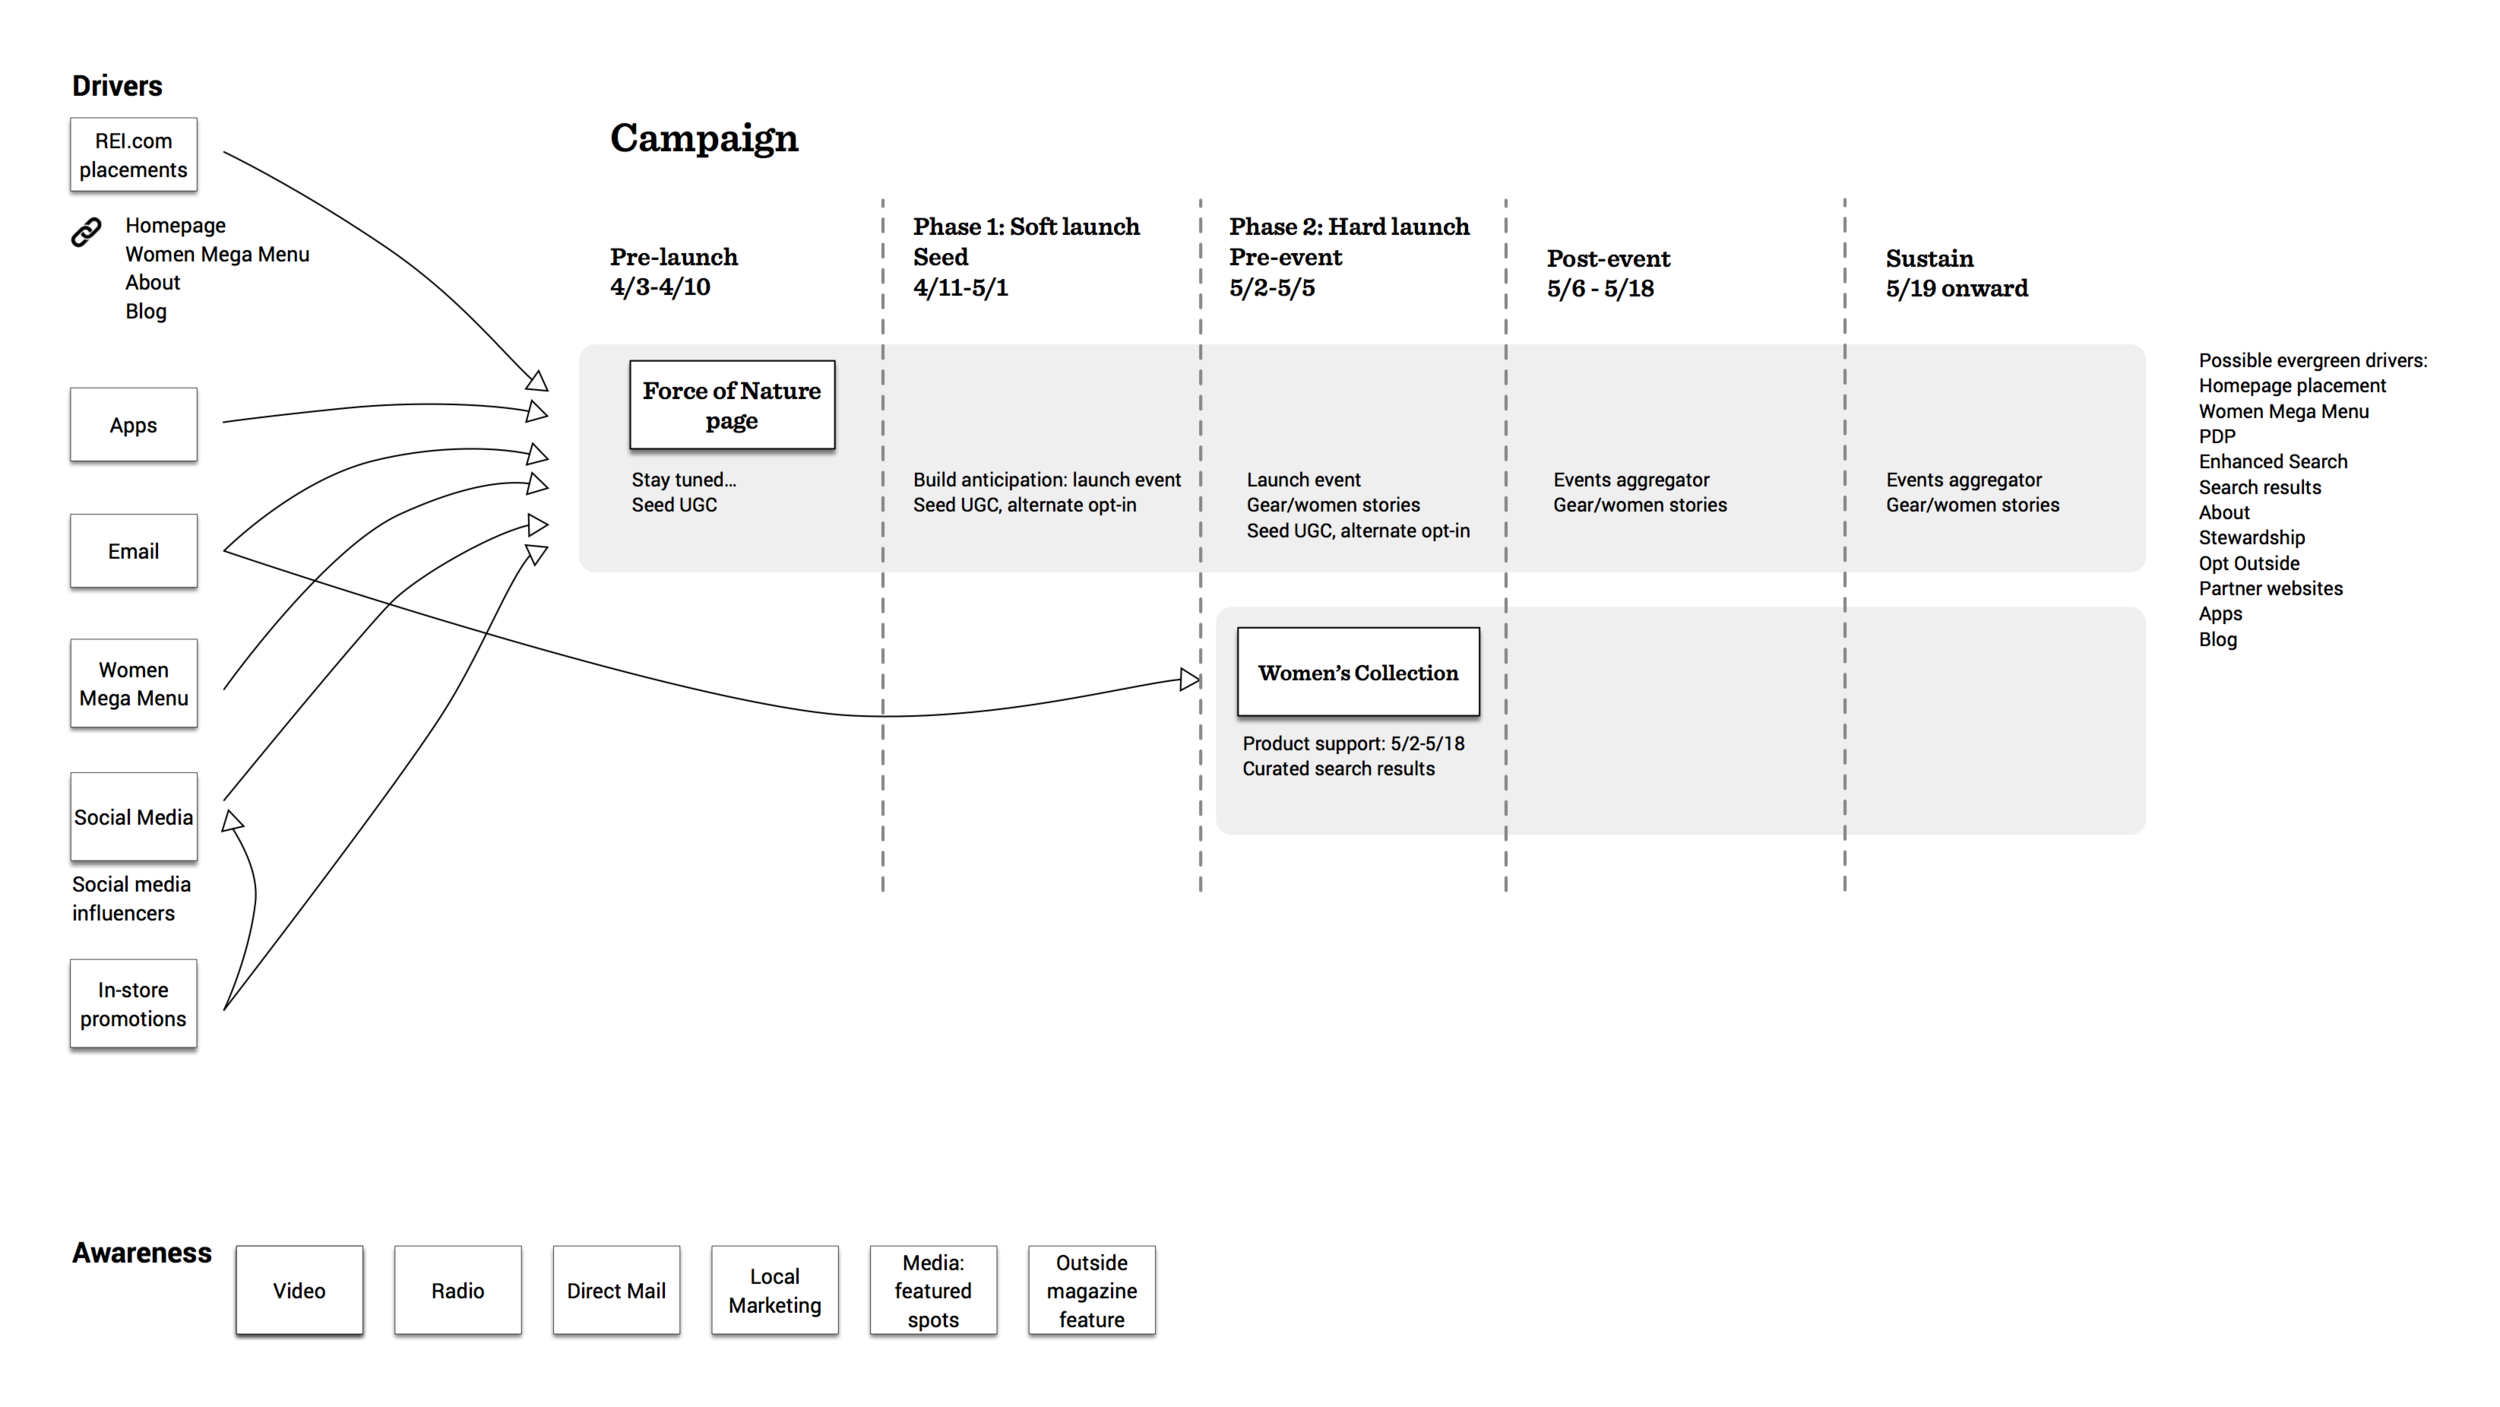 User flow: Drivers connected and overlaid onto timeline with 5 phases. Click to view detail